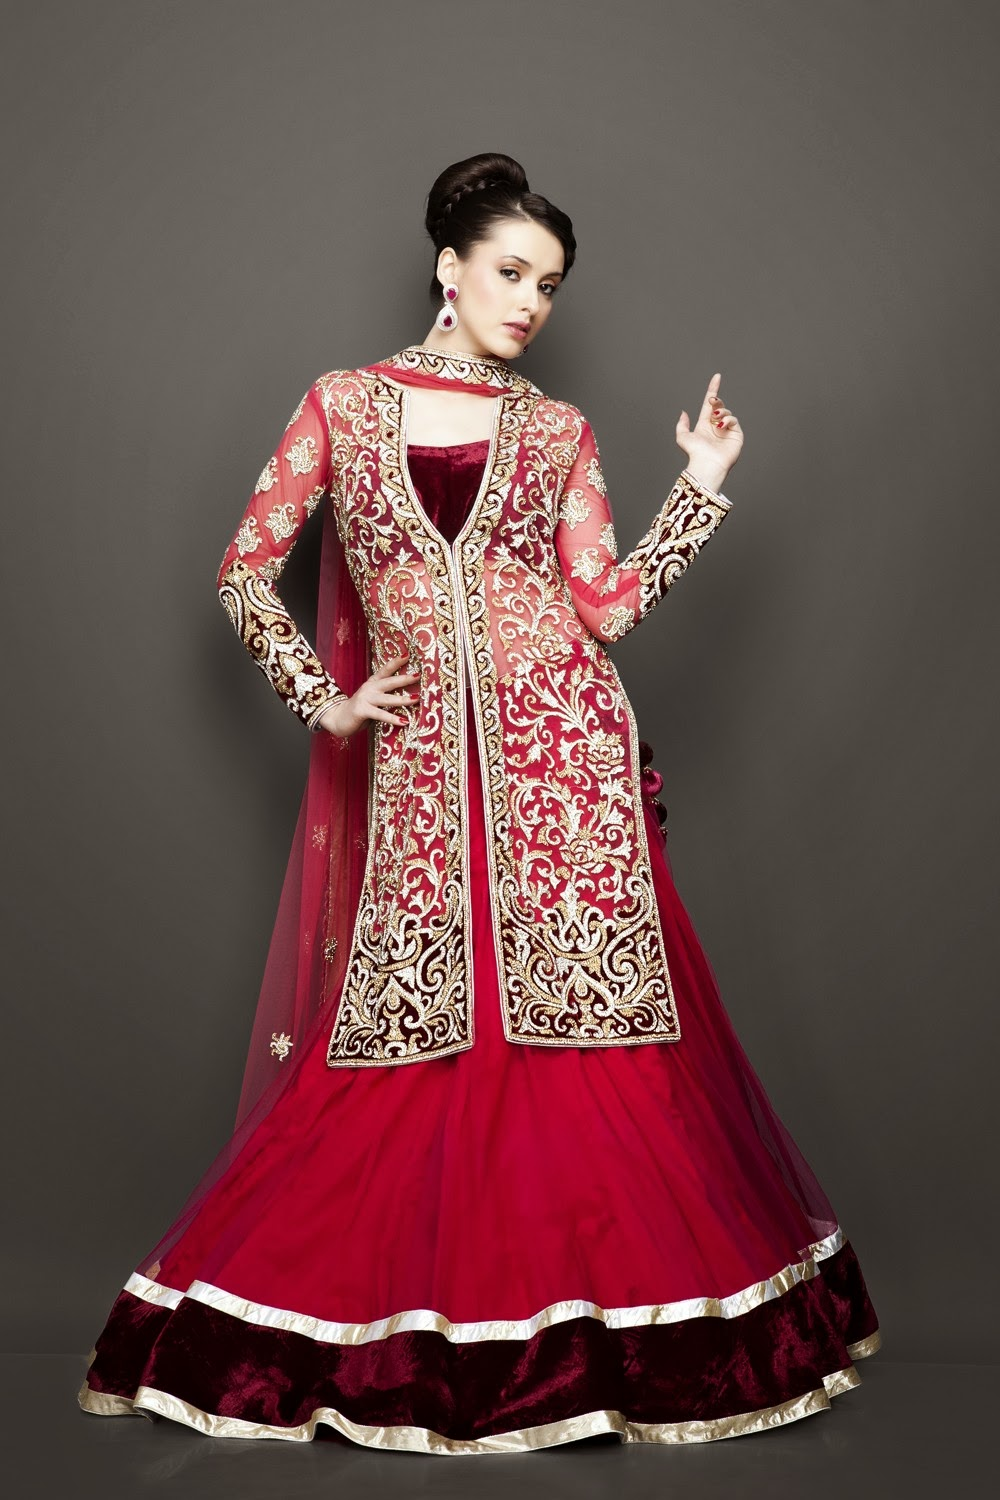 Best wedding bridesmaid lehenga outfits 2014 vega for Indian wedding dresses for girls